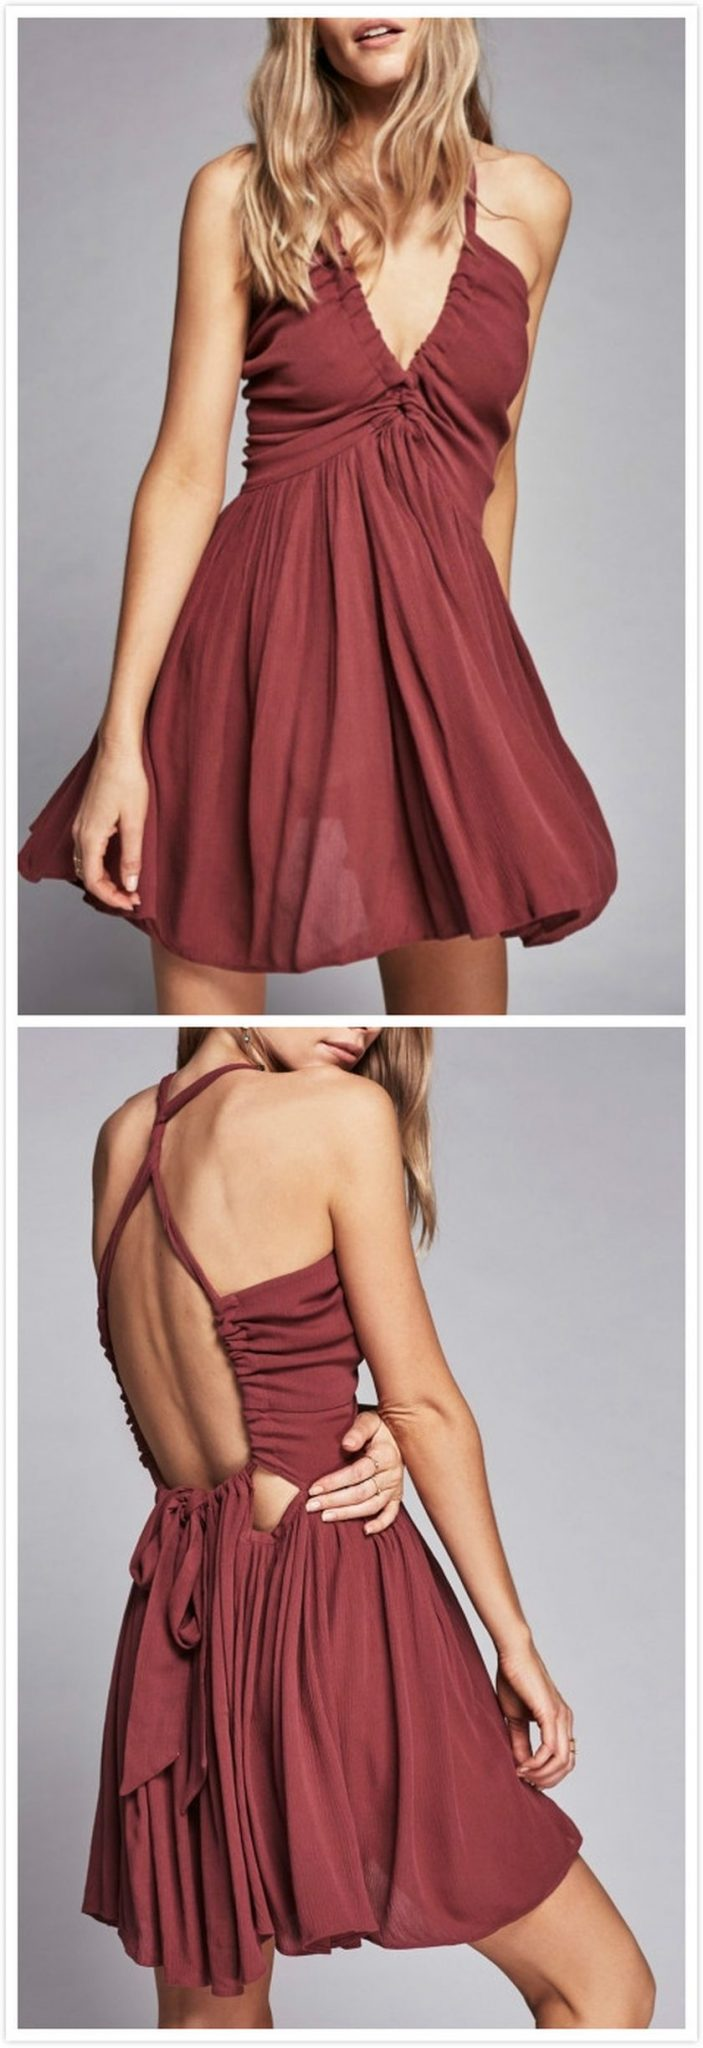 Summer casual backless dresses outfit style 6